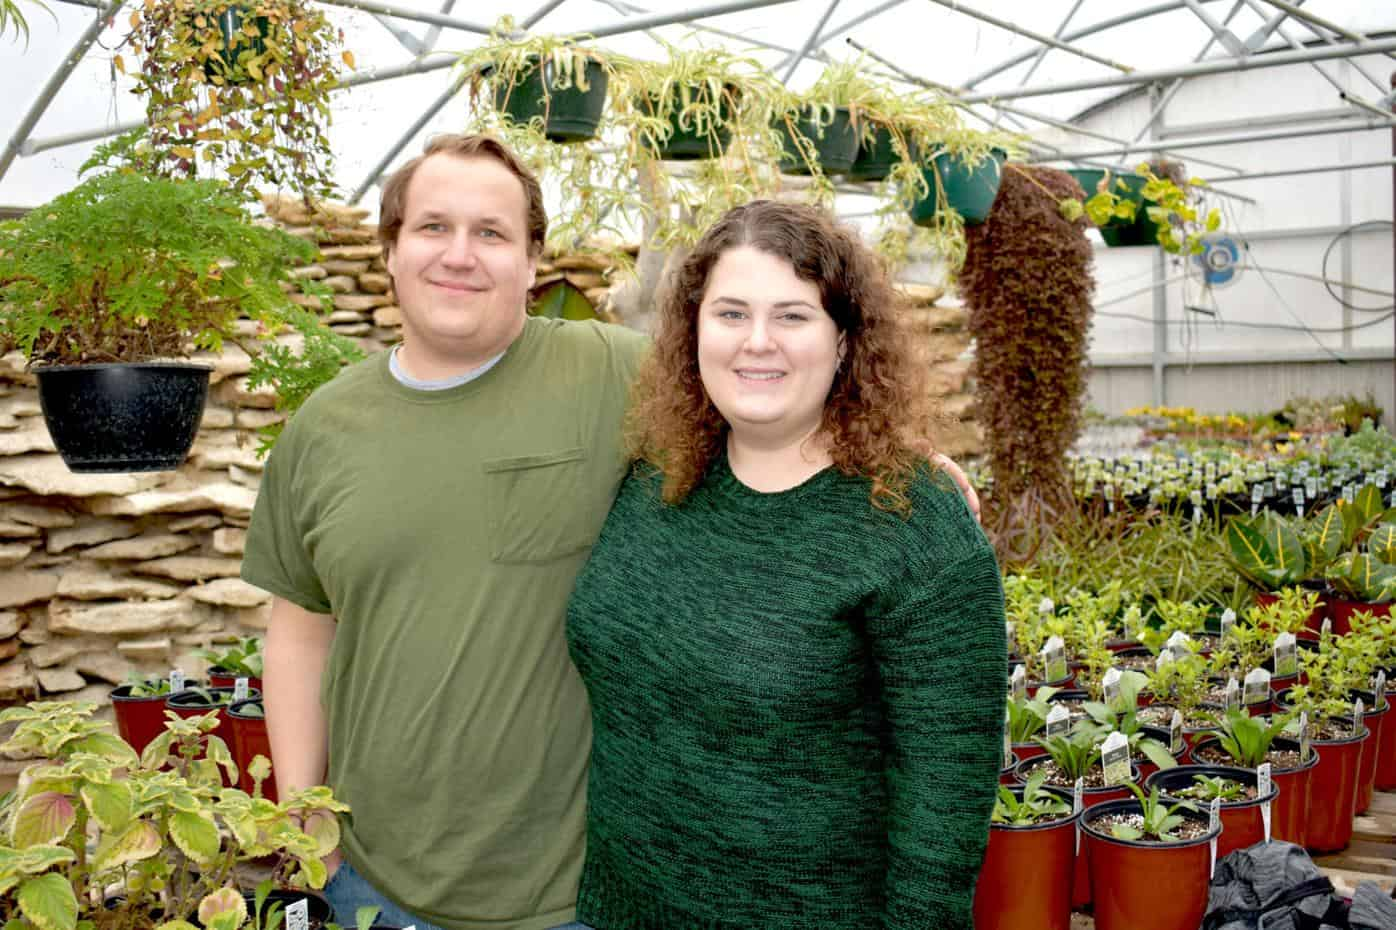 Kelsey Bowlin and Tim Janaousek, Owners of the Plant House in Maryville, MO.  Photo by Skye Pournazari of the Maryville Forum